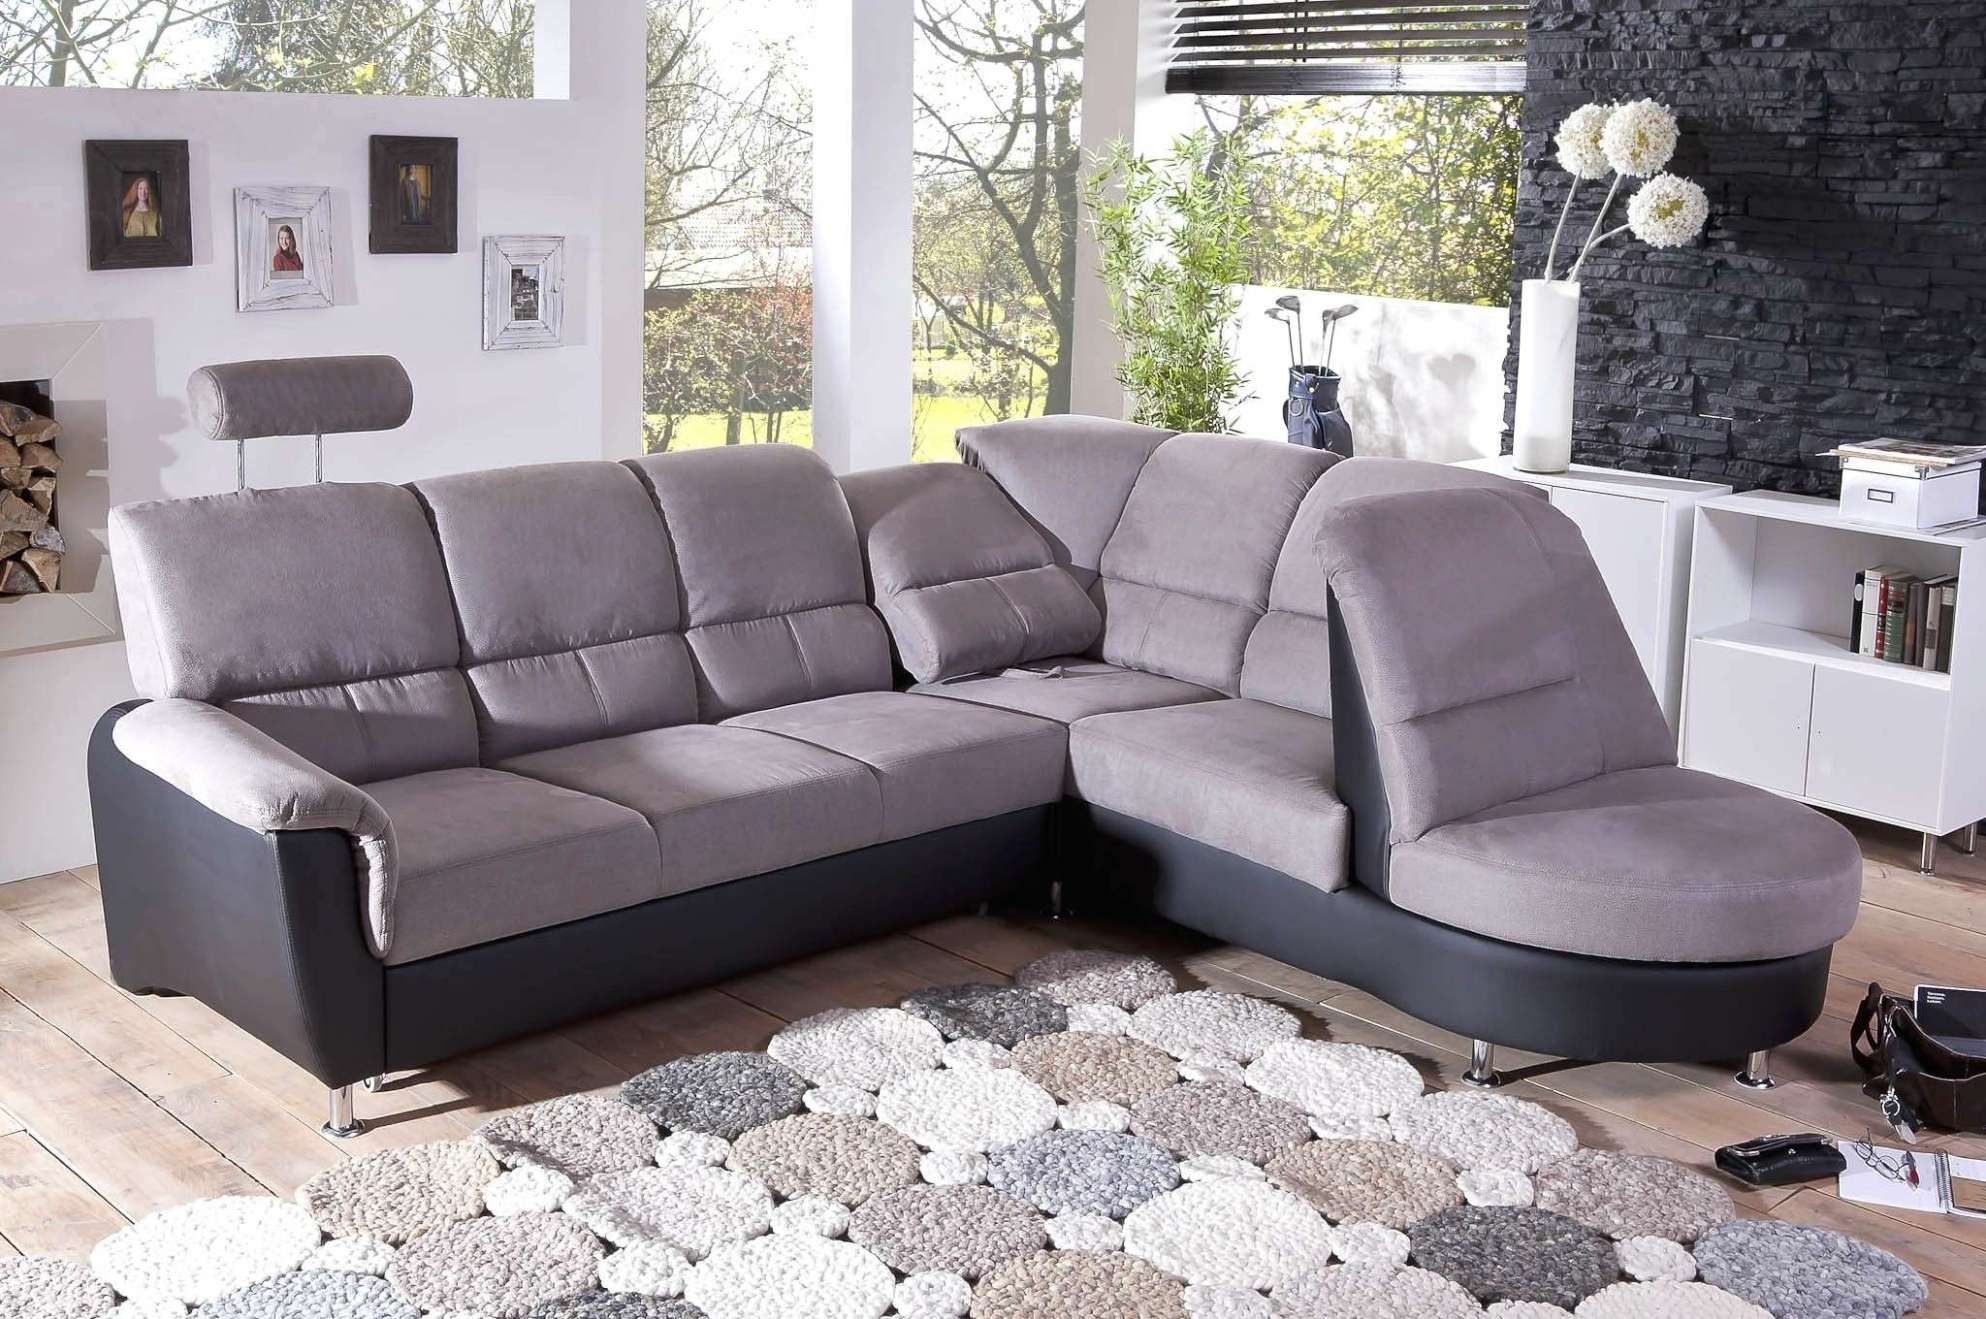 Ecksofa Kaufen Gunstig Ecksofa Leder Gunstig Yct Projekte In 2020 Sofa Design Home Home Decor